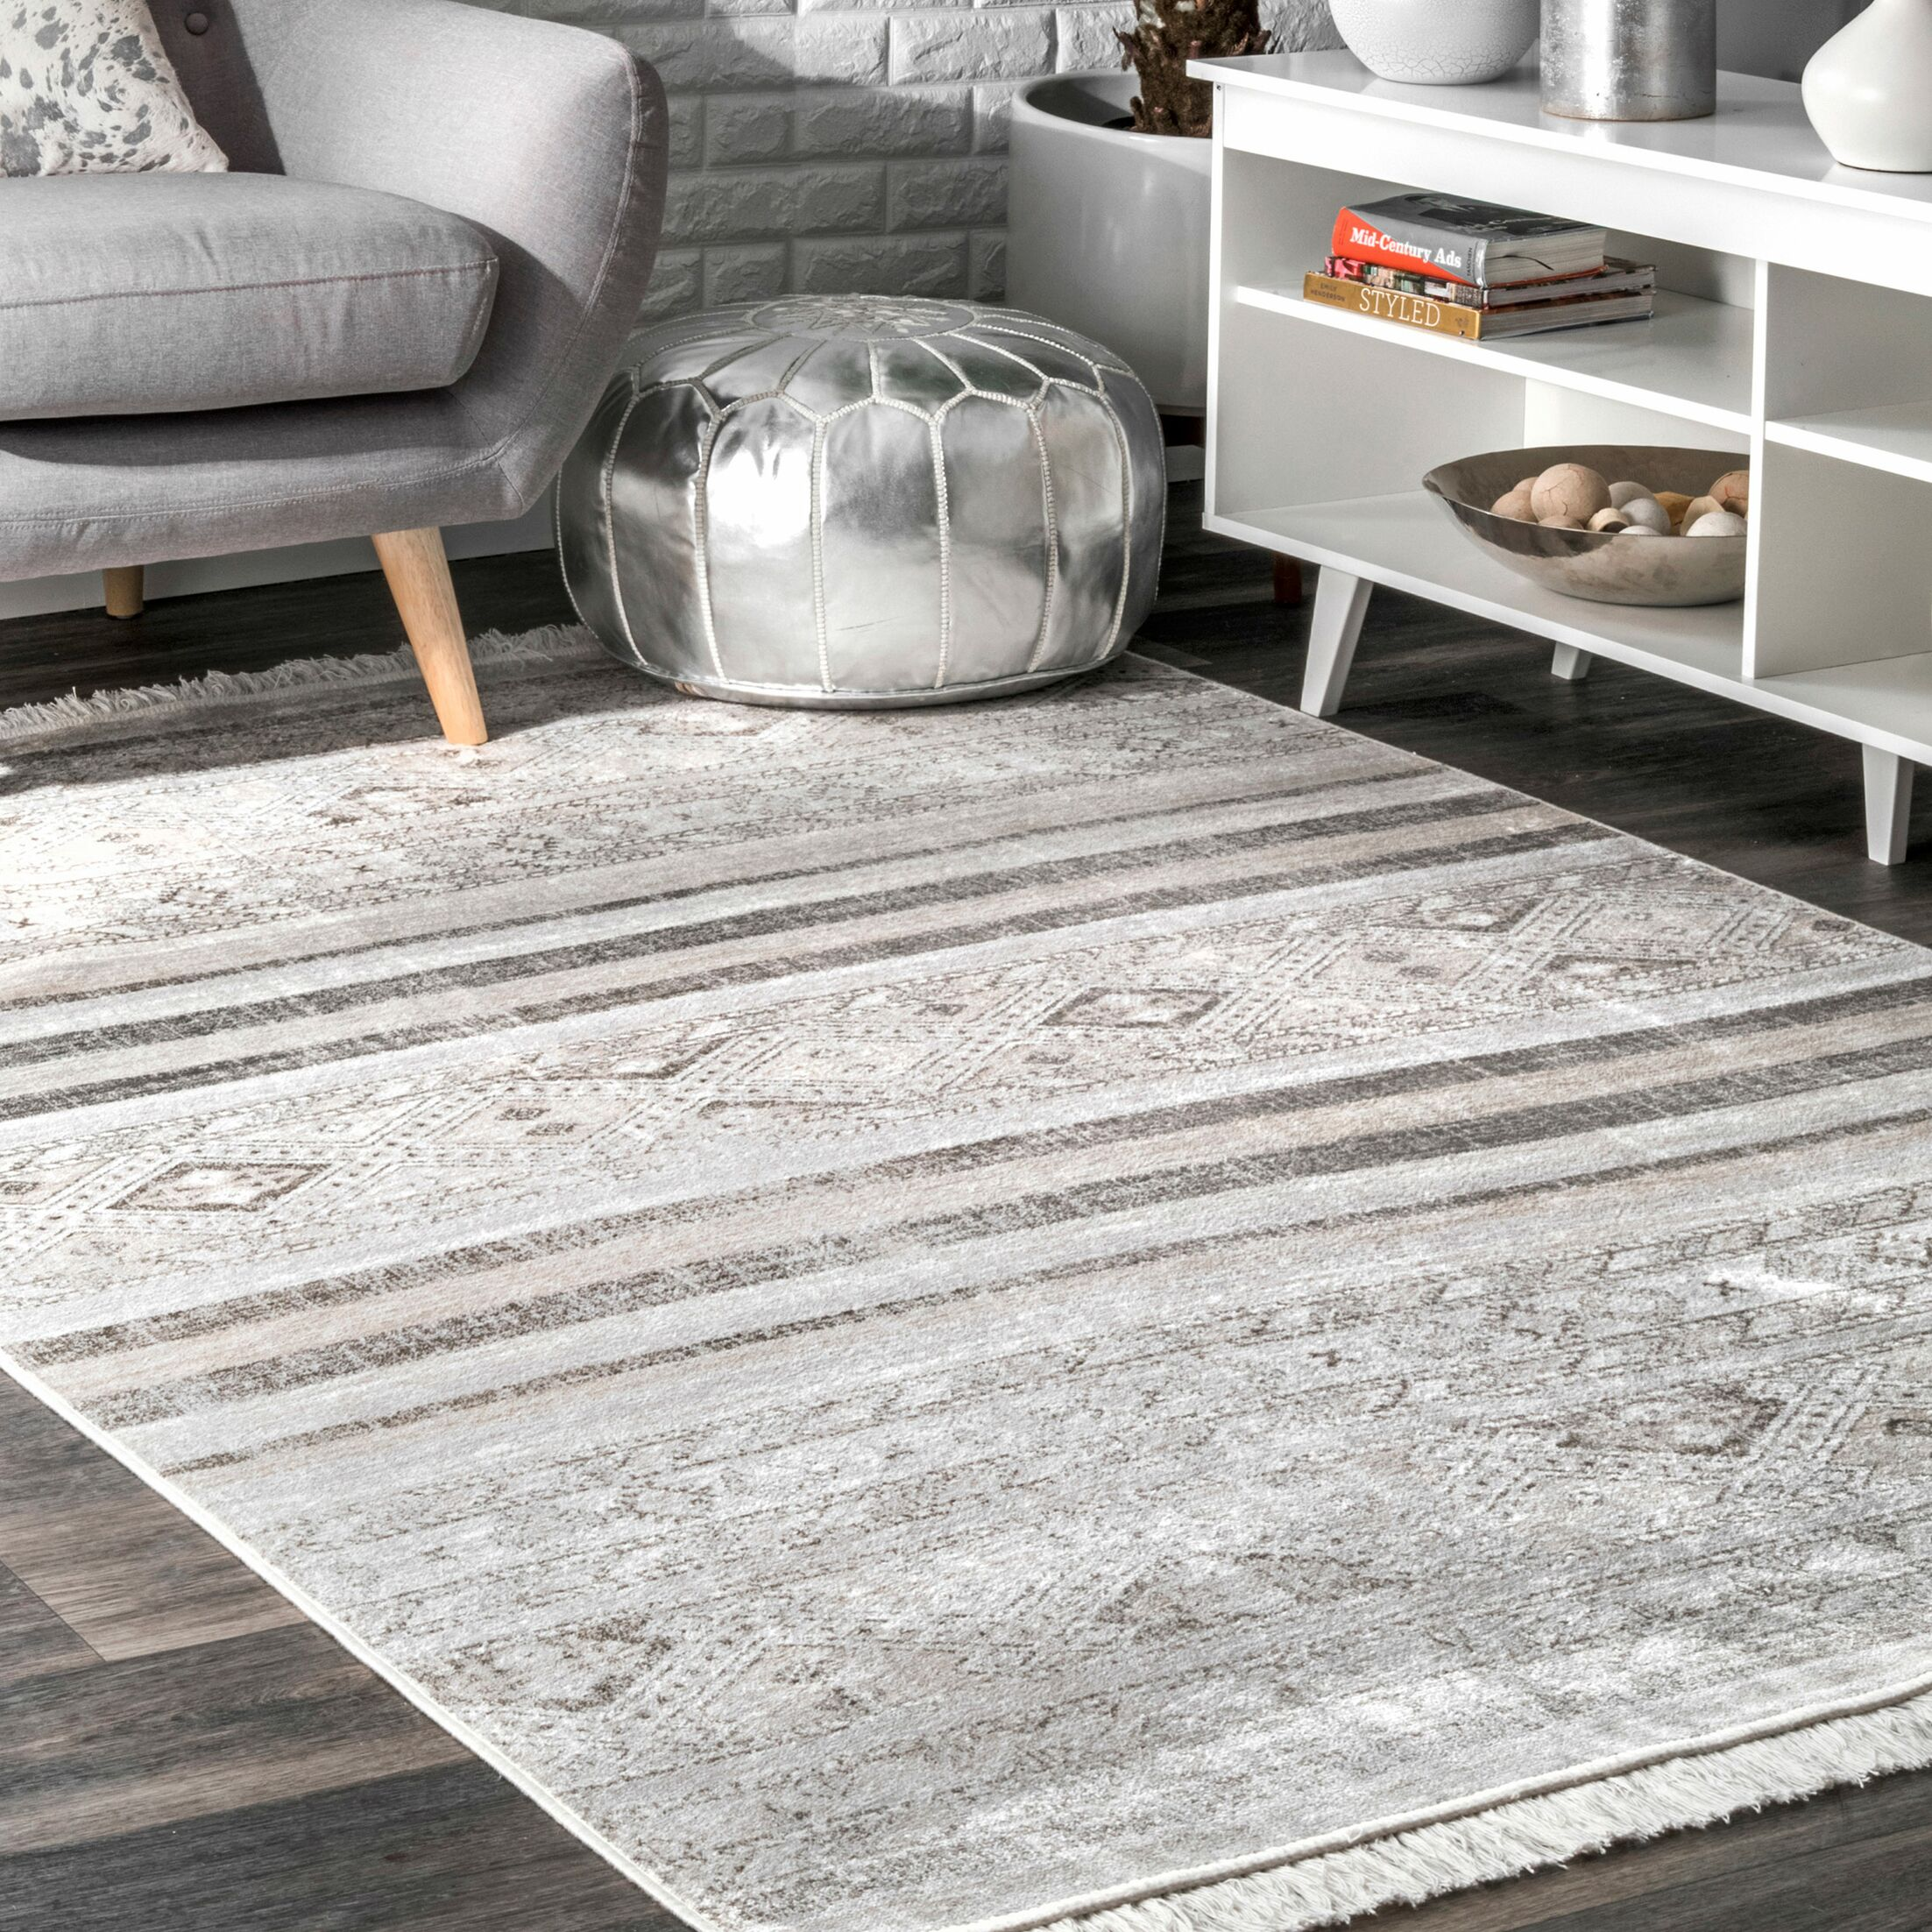 Singh Gray Area Rug Rug Size: Rectangle 6' x 9'